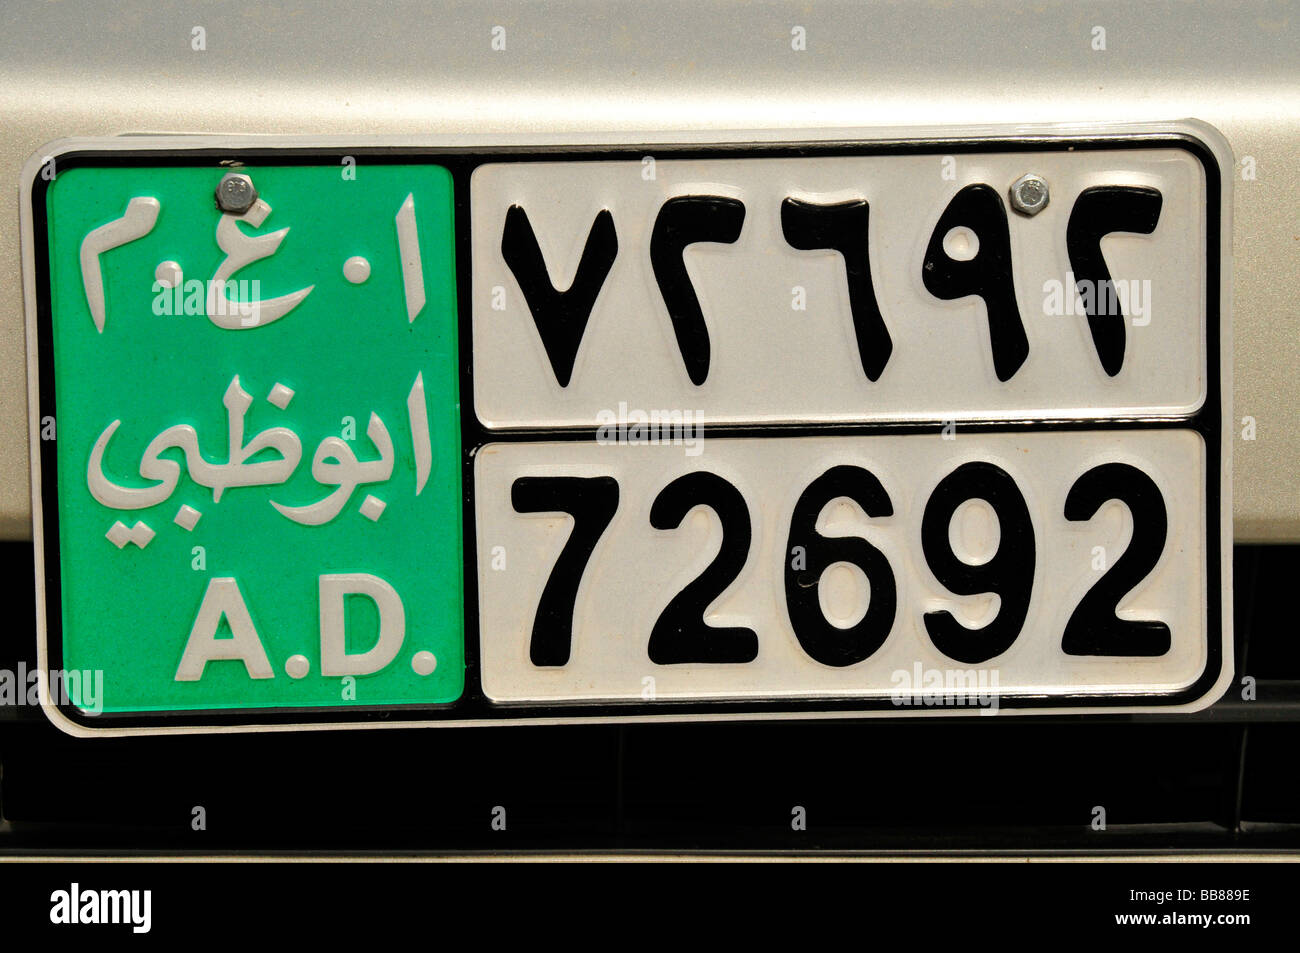 Number plate from Abu Dhabi, United Arab Emirates, Arabia, Orient, Middle East - Stock Image